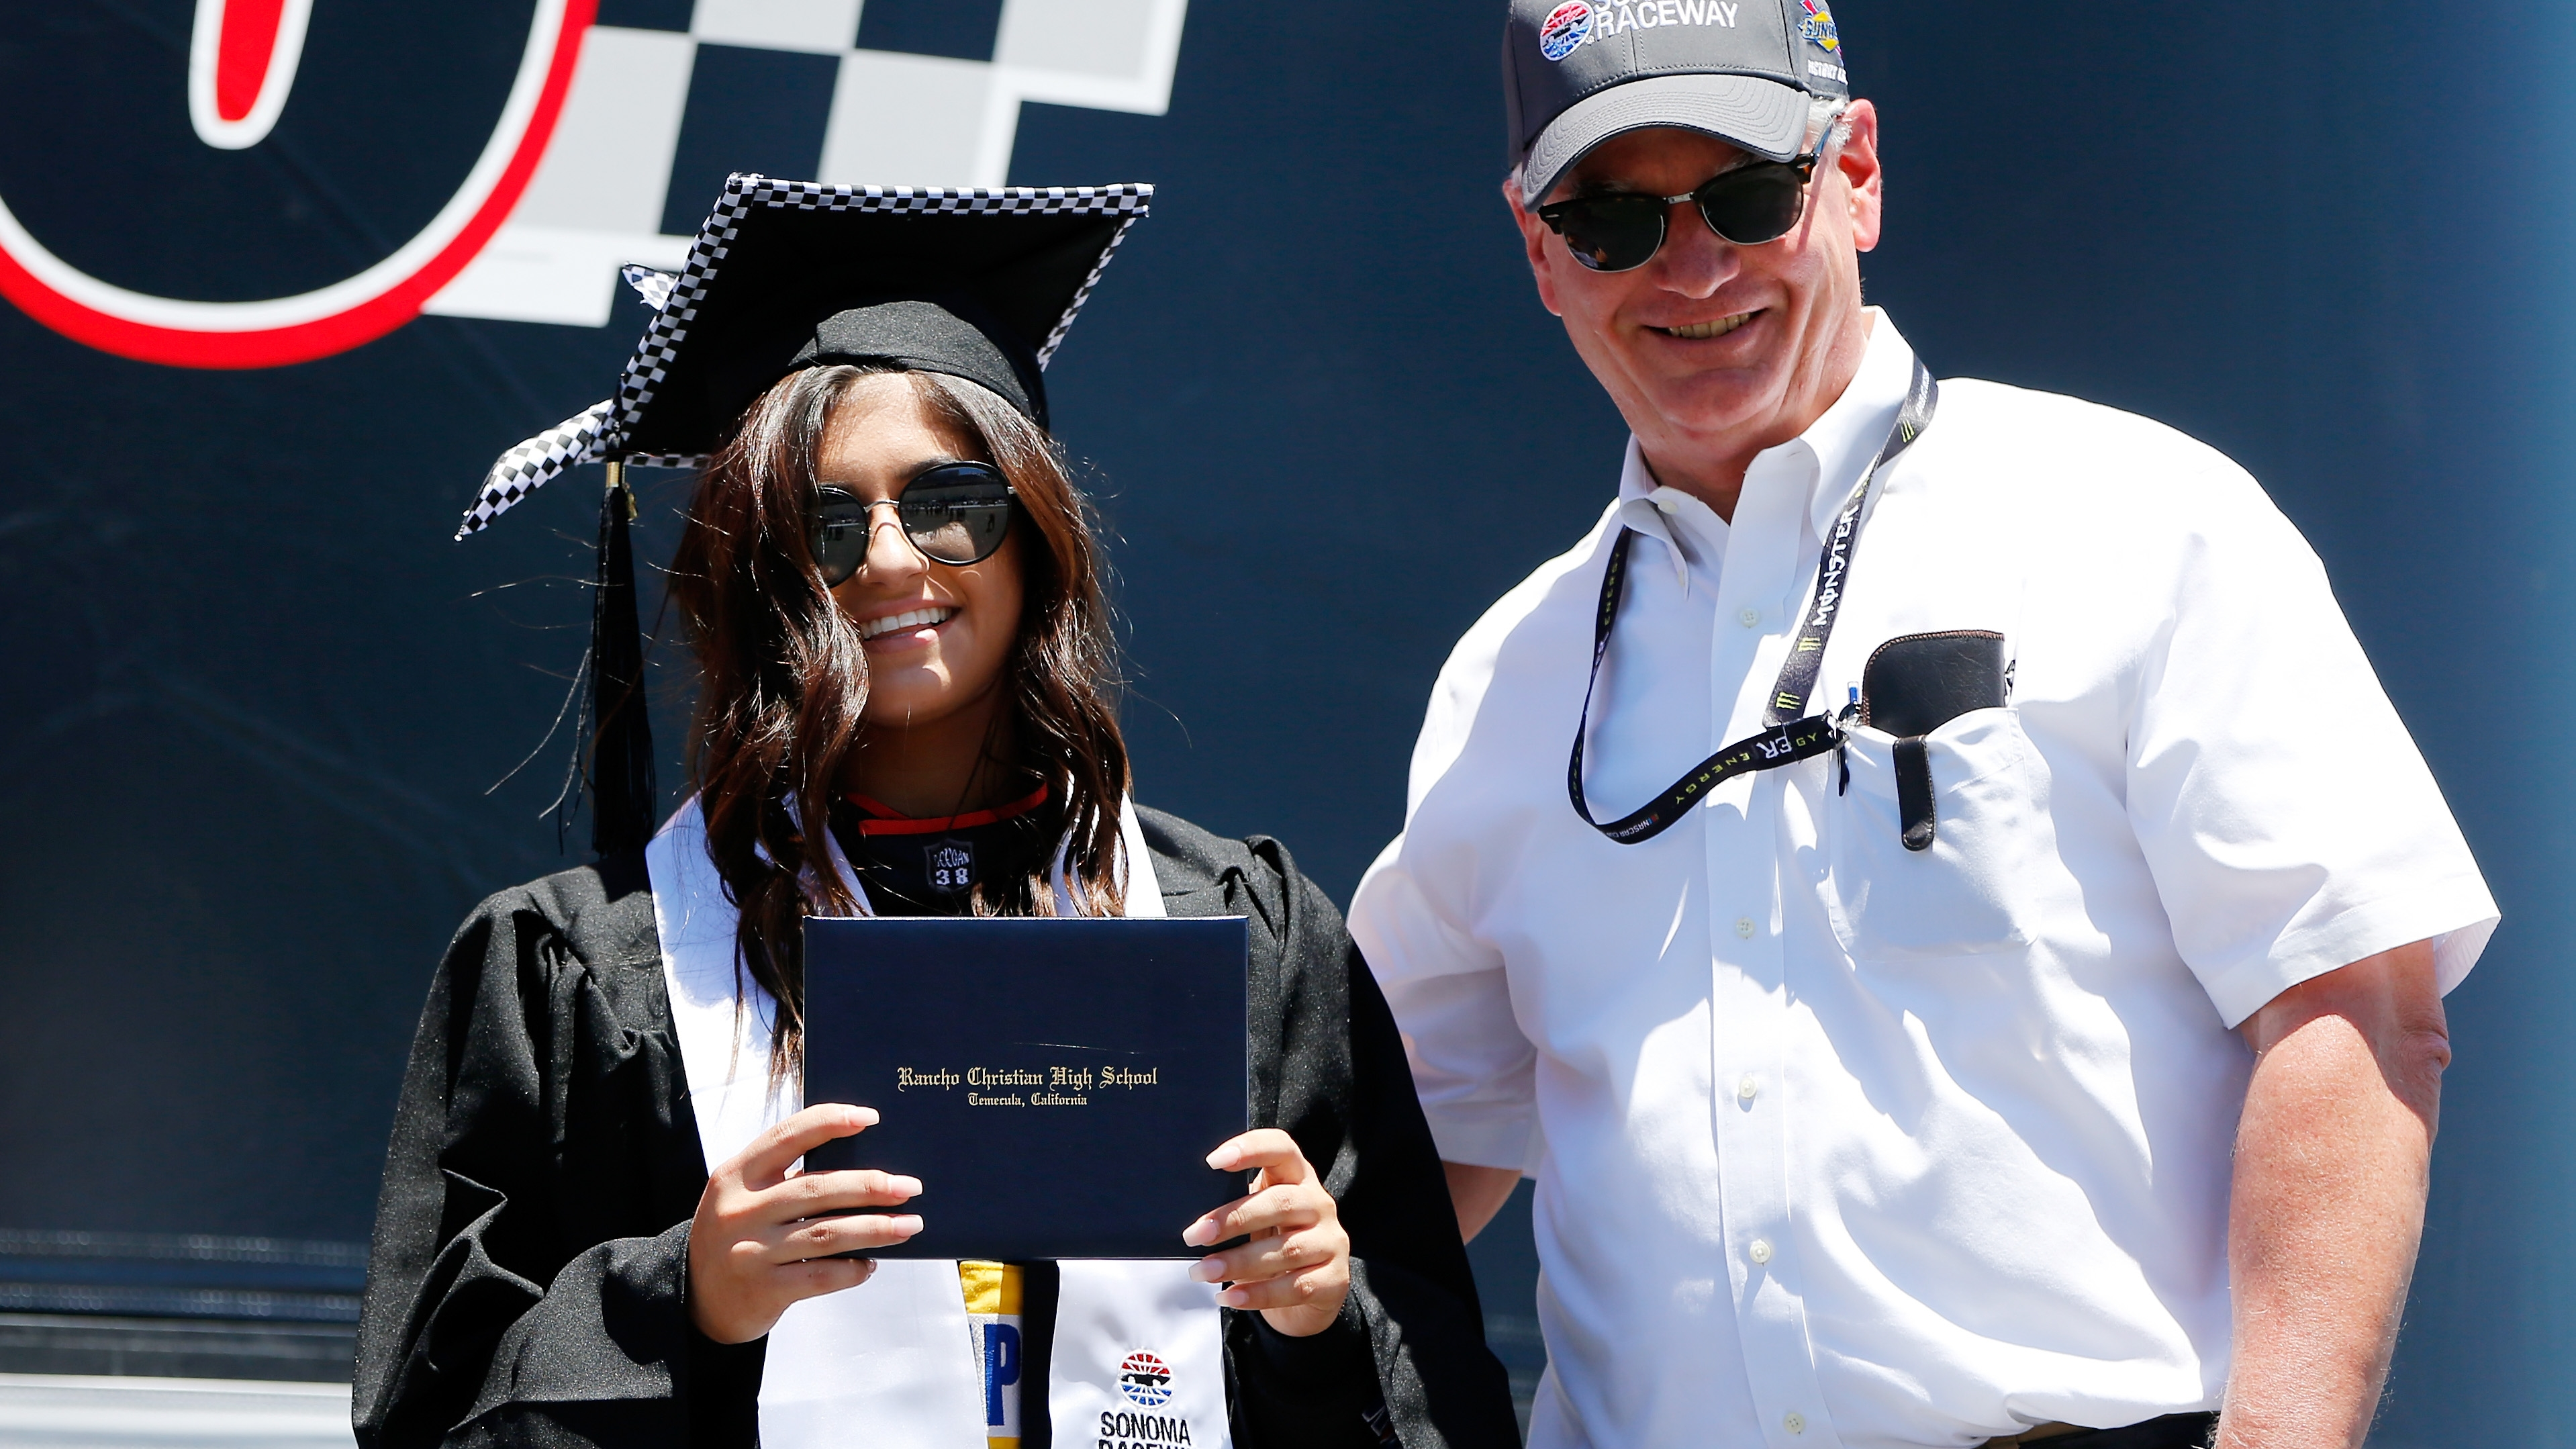 NASCAR driver Hailie Deegan has her HS graduation at track just before racing